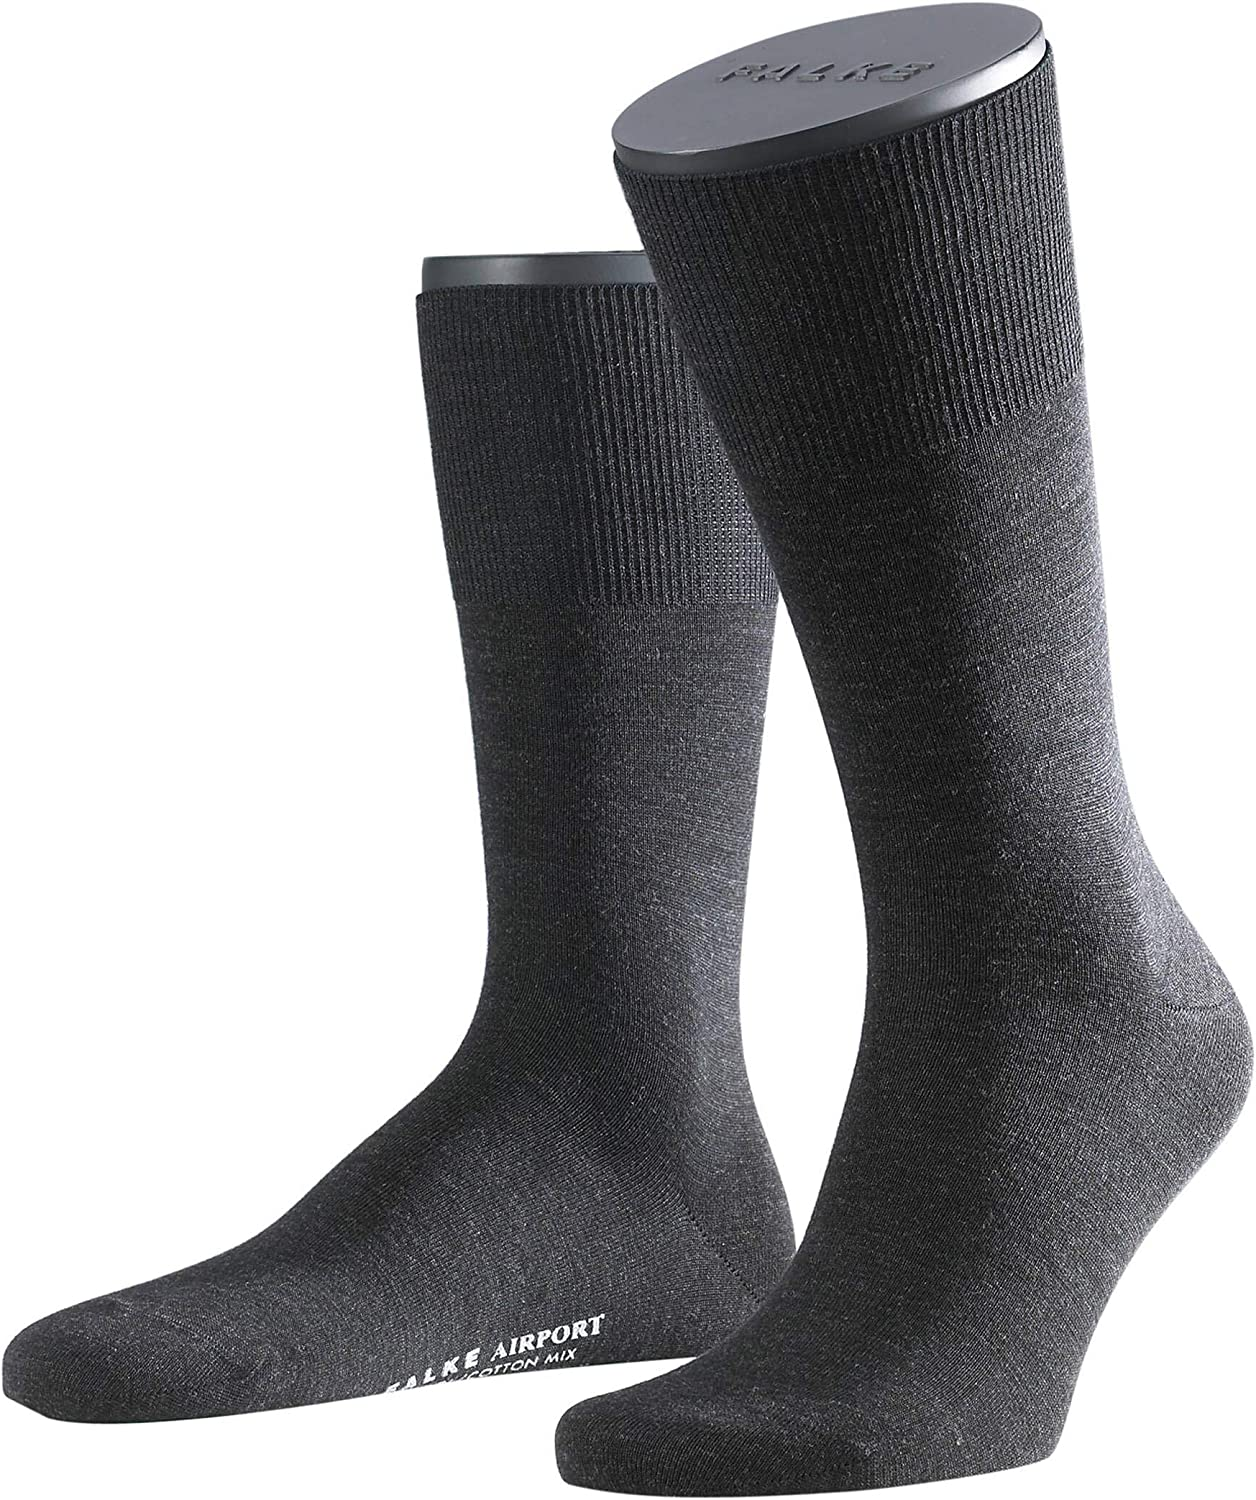 Color color selection Falke Mens Socks 1 pair Airportcity short stocking sizes 41-48 Size 7-8 UK Anthracite